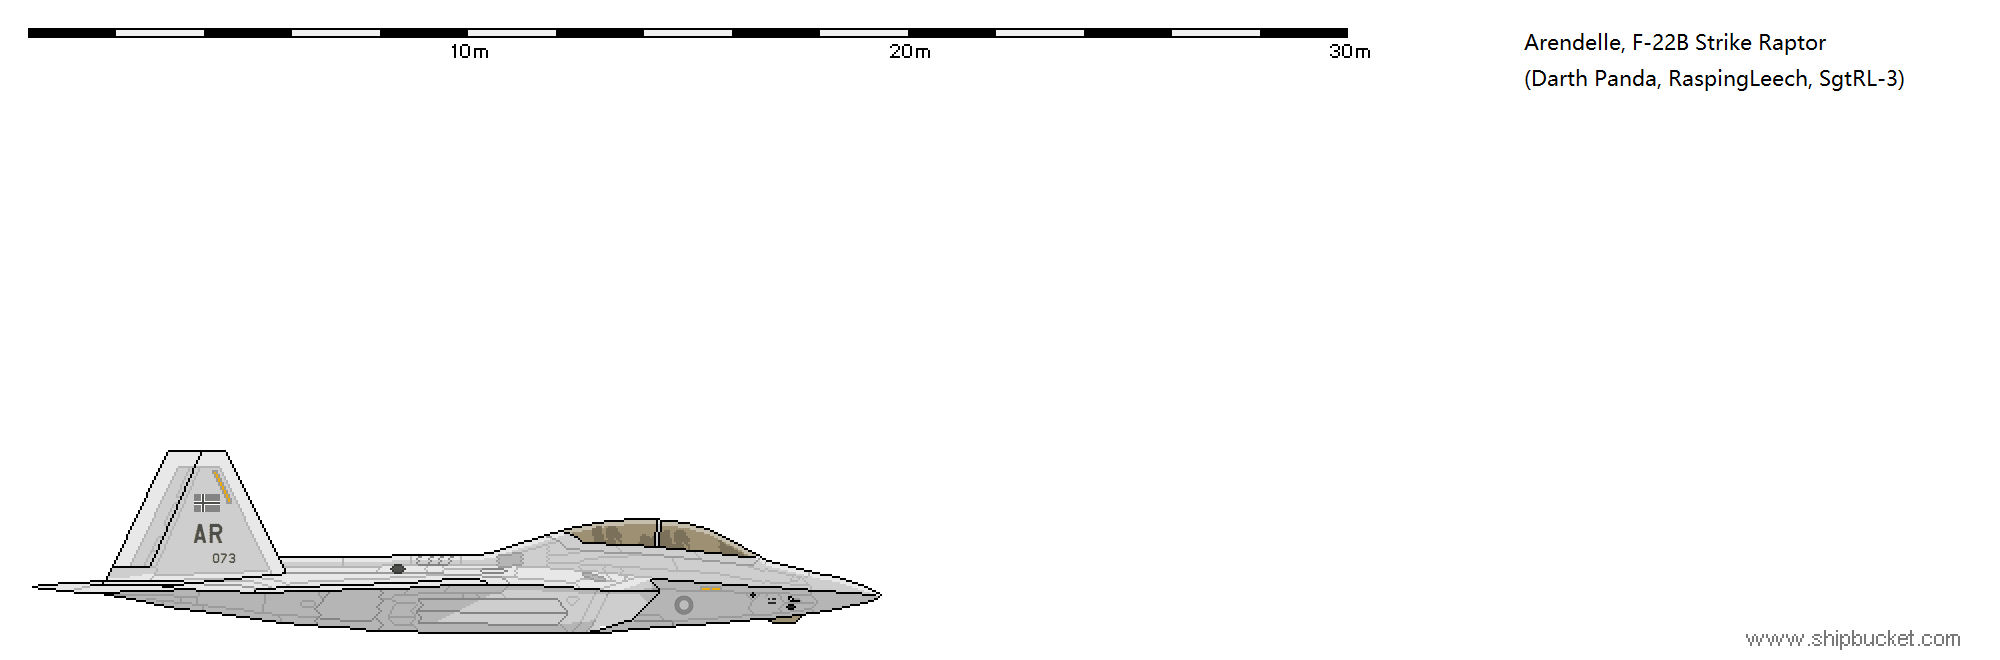 F-22B Peace Valkyrie.png